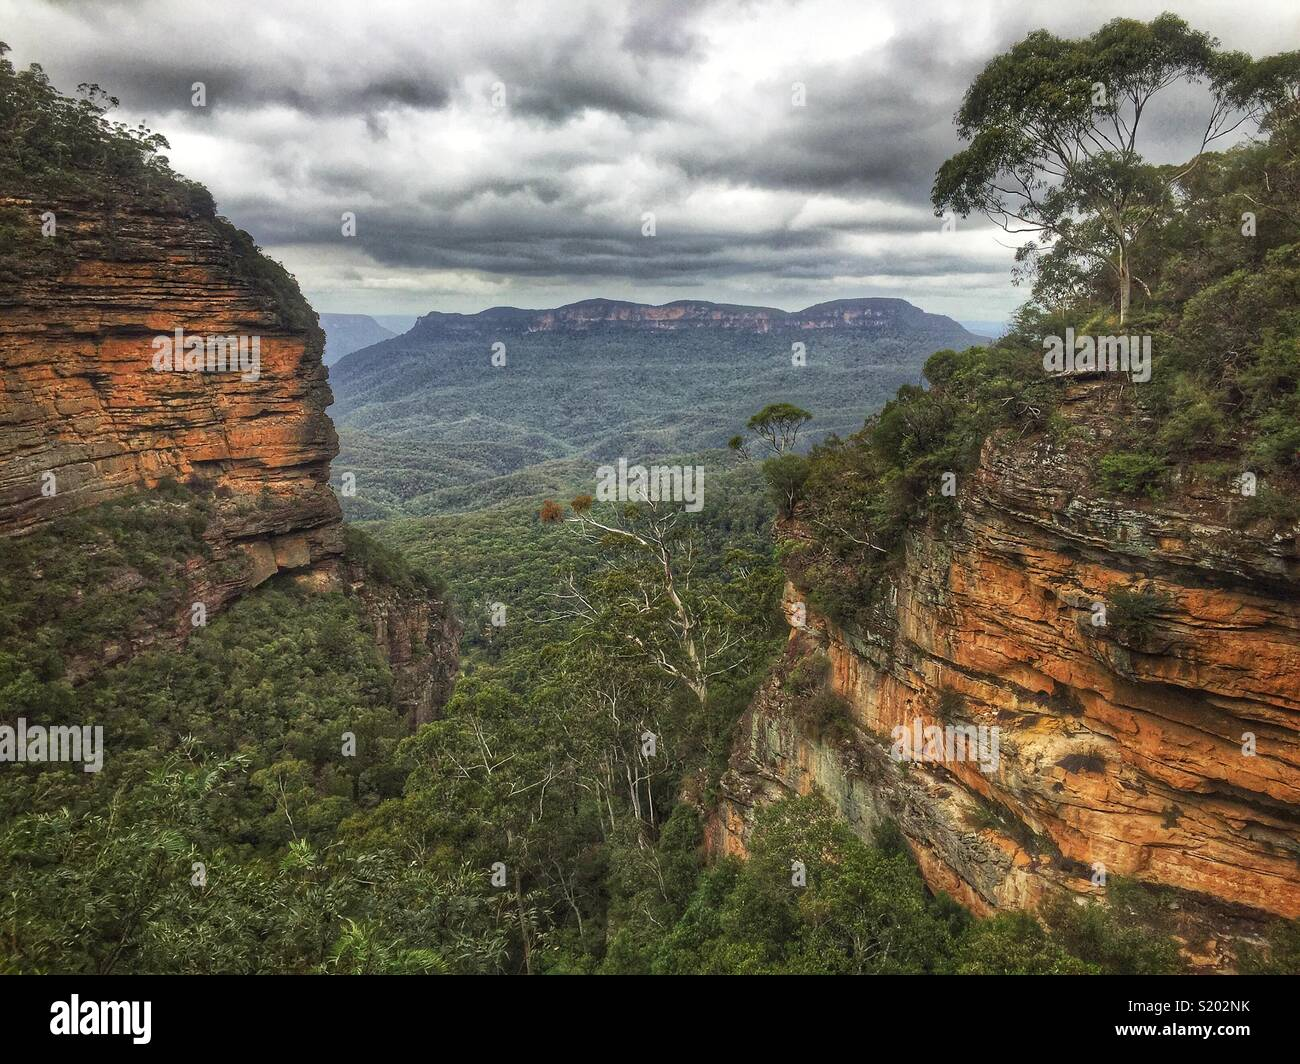 The Jamison Valley and Mount Solitary from Bridal Veil Lookout, Blue Mountains National Park, NSW, Australia - Stock Image